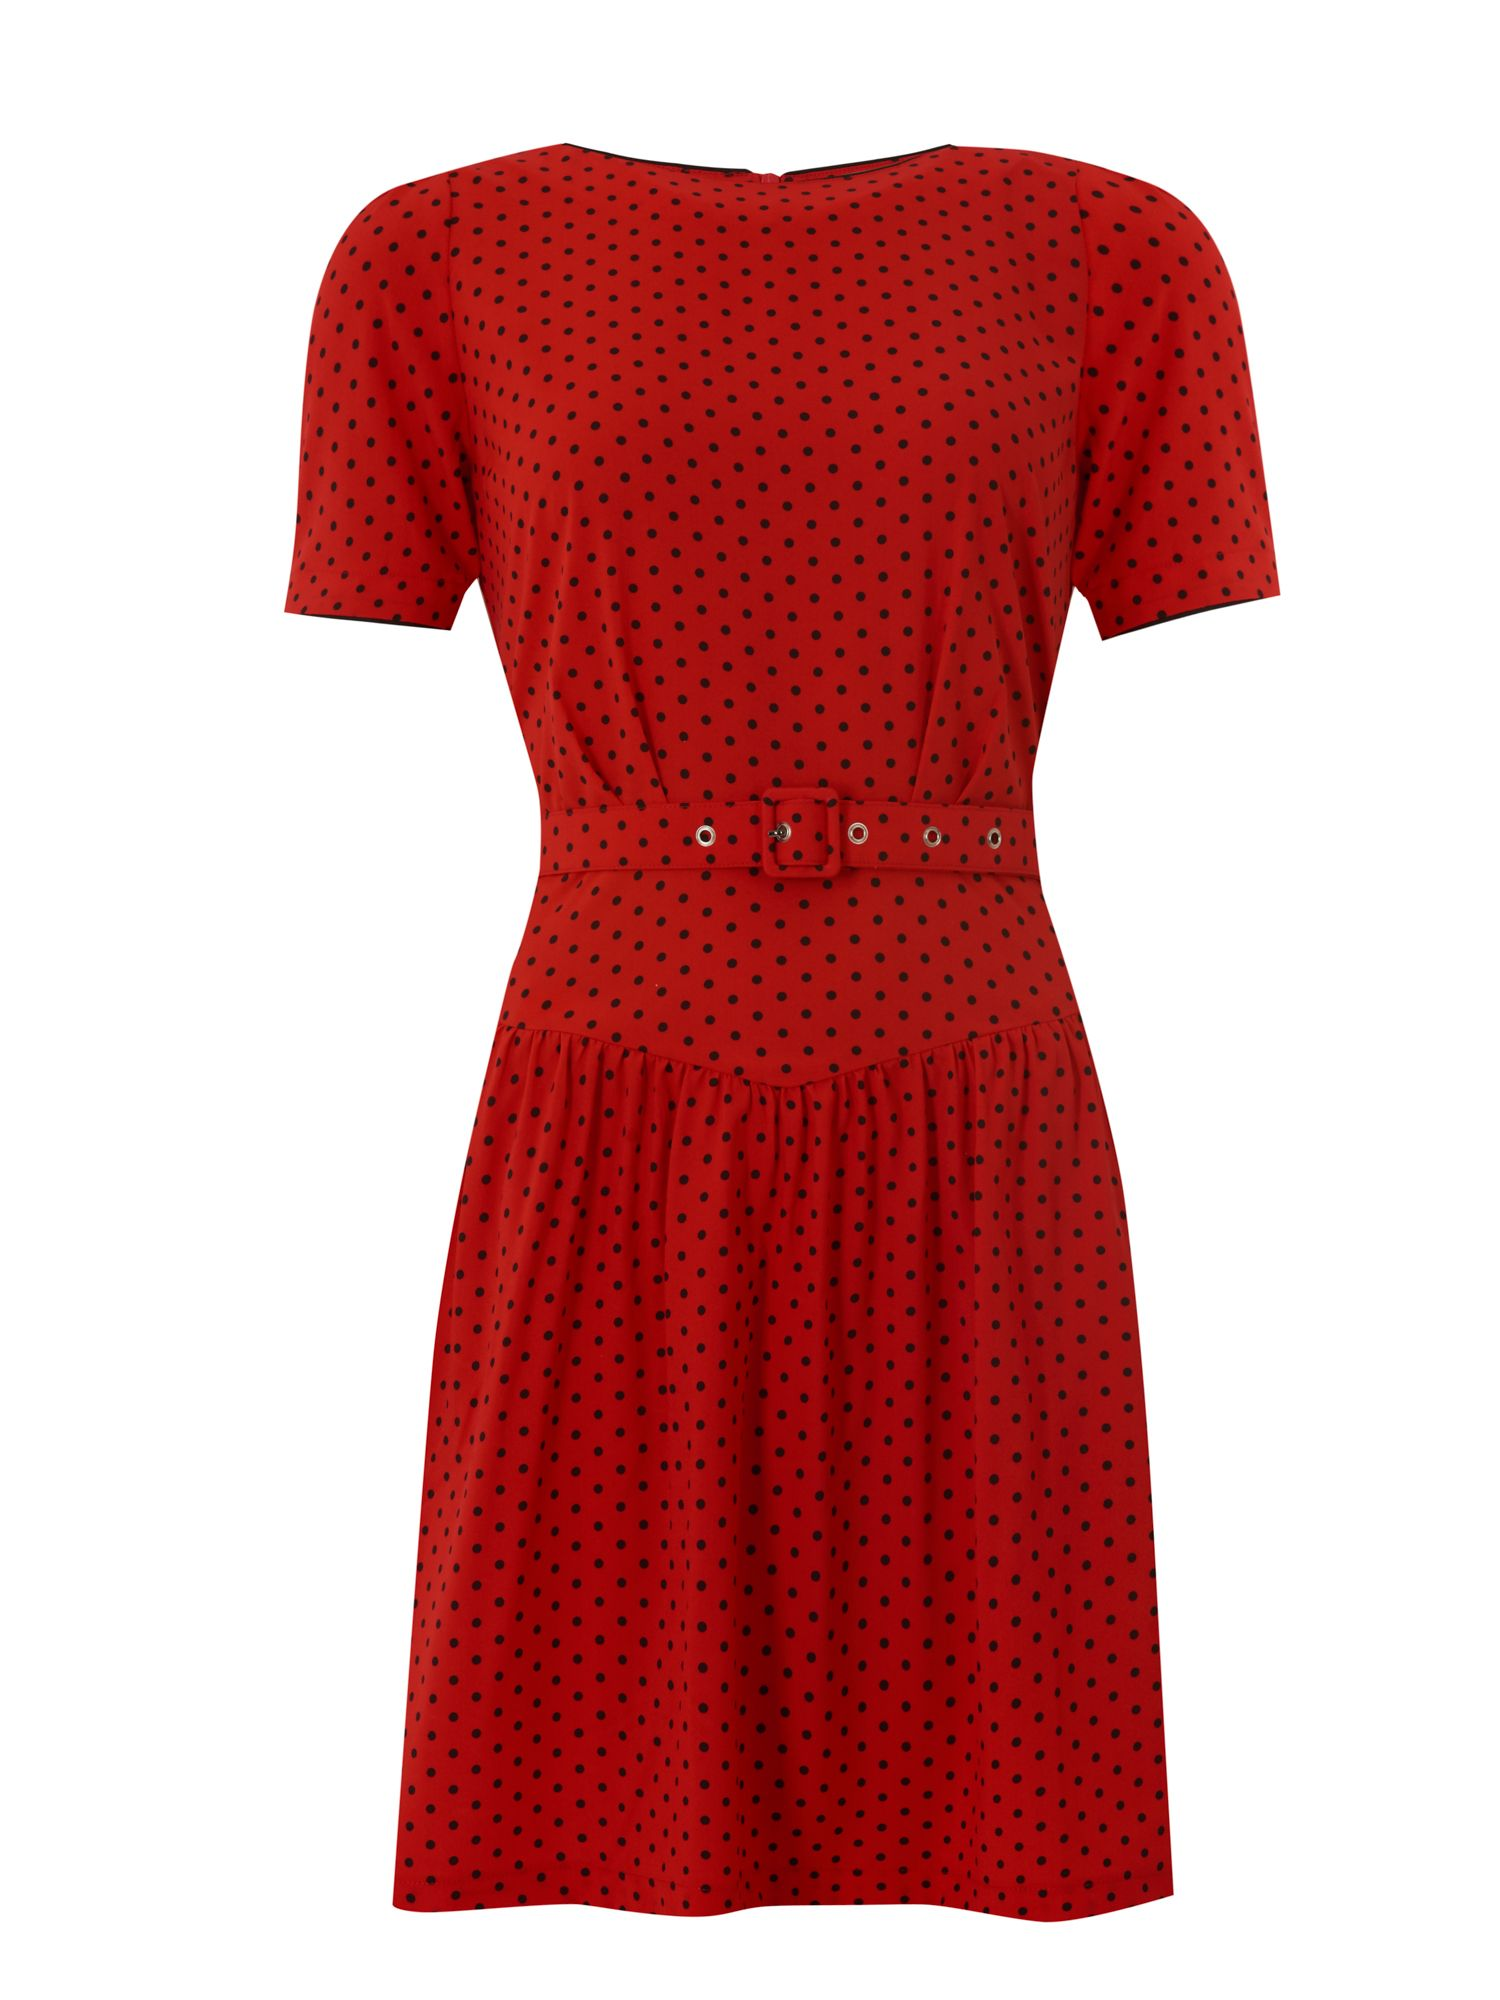 1950s Polka Dot Dresses Trollied Dolly Drop Dead Gorgeous Dress £27.50 AT vintagedancer.com